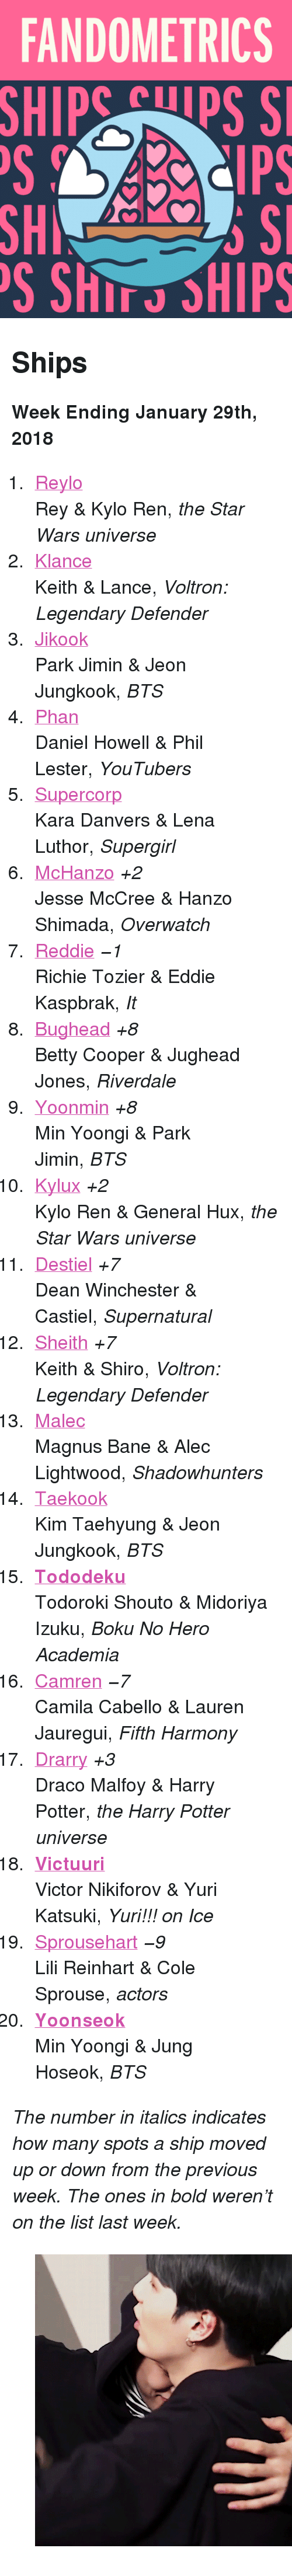 "Jikook: FANDOMETRICS  SHIP  Cps S  SH  S ShIT SHIPS <h2>Ships</h2><p><b>Week Ending January 29th, 2018</b></p><ol><li><a href=""http://www.tumblr.com/search/reylo"">Reylo</a><br/>Rey &amp; Kylo Ren, <i>the Star Wars universe</i><br/></li>  <li><a href=""http://www.tumblr.com/search/klance"">Klance</a><br/>Keith &amp; Lance, <i>Voltron: Legendary Defender</i><br/></li>  <li><a href=""http://www.tumblr.com/search/jikook"">Jikook</a><br/>Park Jimin &amp; Jeon Jungkook, <i>BTS</i><br/></li>  <li><a href=""http://www.tumblr.com/search/phan"">Phan</a><br/>Daniel Howell &amp; Phil Lester, <i>YouTubers</i><br/></li>  <li><a href=""http://www.tumblr.com/search/supercorp"">Supercorp</a><br/>Kara Danvers &amp; Lena Luthor, <i>Supergirl</i><br/></li>  <li><a href=""http://www.tumblr.com/search/mchanzo"">McHanzo</a> <i>+2</i><br/>Jesse McCree &amp; Hanzo Shimada, <i>Overwatch</i><br/></li>  <li><a href=""http://www.tumblr.com/search/reddie"">Reddie</a> <i><i>−1</i></i><br/>Richie Tozier &amp; Eddie Kaspbrak, <i>It</i><br/></li>  <li><a href=""http://www.tumblr.com/search/bughead"">Bughead</a> <i>+8</i><br/>Betty Cooper &amp; Jughead Jones, <i>Riverdale</i><br/></li>  <li><a href=""http://www.tumblr.com/search/yoonmin"">Yoonmin</a> <i>+8</i><br/>Min Yoongi &amp; Park Jimin, <i>BTS</i><br/></li>  <li><a href=""http://www.tumblr.com/search/kylux"">Kylux</a> <i>+2</i><br/>Kylo Ren &amp; General Hux, <i>the Star Wars universe</i><br/></li>  <li><a href=""http://www.tumblr.com/search/destiel"">Destiel</a> <i>+7</i><br/>Dean Winchester &amp; Castiel, <i>Supernatural</i><br/></li>  <li><a href=""http://www.tumblr.com/search/sheith"">Sheith</a> <i>+7</i><br/>Keith &amp; Shiro, <i>Voltron: Legendary Defender</i><br/></li>  <li><a href=""http://www.tumblr.com/search/malec"">Malec</a><br/>Magnus Bane &amp; Alec Lightwood, <i>Shadowhunters</i><br/></li>  <li><a href=""http://www.tumblr.com/search/taekook"">Taekook</a><br/>Kim Taehyung &amp; Jeon Jungkook, <i>BTS</i><br/></li>  <li><a href=""http://www.tumblr.com/search/tododeku""><b>Tododeku</b></a><br/>Todoroki Shouto &amp; Midoriya Izuku, <i>Boku No Hero Academia</i><br/></li>  <li><a href=""http://www.tumblr.com/search/camren"">Camren</a> <i><i>−7</i></i><br/>Camila Cabello &amp; Lauren Jauregui, <i>Fifth Harmony</i><br/></li>  <li><a href=""http://www.tumblr.com/search/drarry"">Drarry</a> <i>+3</i><br/>Draco Malfoy &amp; Harry Potter, <i>the Harry Potter universe</i><br/></li>  <li><a href=""http://www.tumblr.com/search/victuuri""><b>Victuuri</b></a><br/>Victor Nikiforov &amp; Yuri Katsuki, <i>Yuri!!! on Ice</i><br/></li>  <li><a href=""http://www.tumblr.com/search/sprousehart"">Sprousehart</a> <i><i>−9</i></i><br/>Lili Reinhart &amp; Cole Sprouse, <i>actors</i><br/></li>  <li><a href=""http://www.tumblr.com/search/yoonseok""><b>Yoonseok</b></a><br/>Min Yoongi &amp; Jung Hoseok, <i>BTS</i><br/></li></ol><p><i>The number in italics indicates how many spots a ship moved up or down from the previous week. The ones in bold weren't on the list last week.</i></p><figure class=""tmblr-full"" data-orig-height=""500"" data-orig-width=""500"" data-tumblr-attribution=""jimiyoong:Jgq9FcwAILYz0O2wuyBc0A:ZKa02h2LEYsB2""><img src=""https://78.media.tumblr.com/482168d1f01bb6e8e1eeb09064f755b7/tumblr_opc1slyjt81vuwqjbo2_r1_500.gif"" data-orig-height=""500"" data-orig-width=""500""/></figure>"